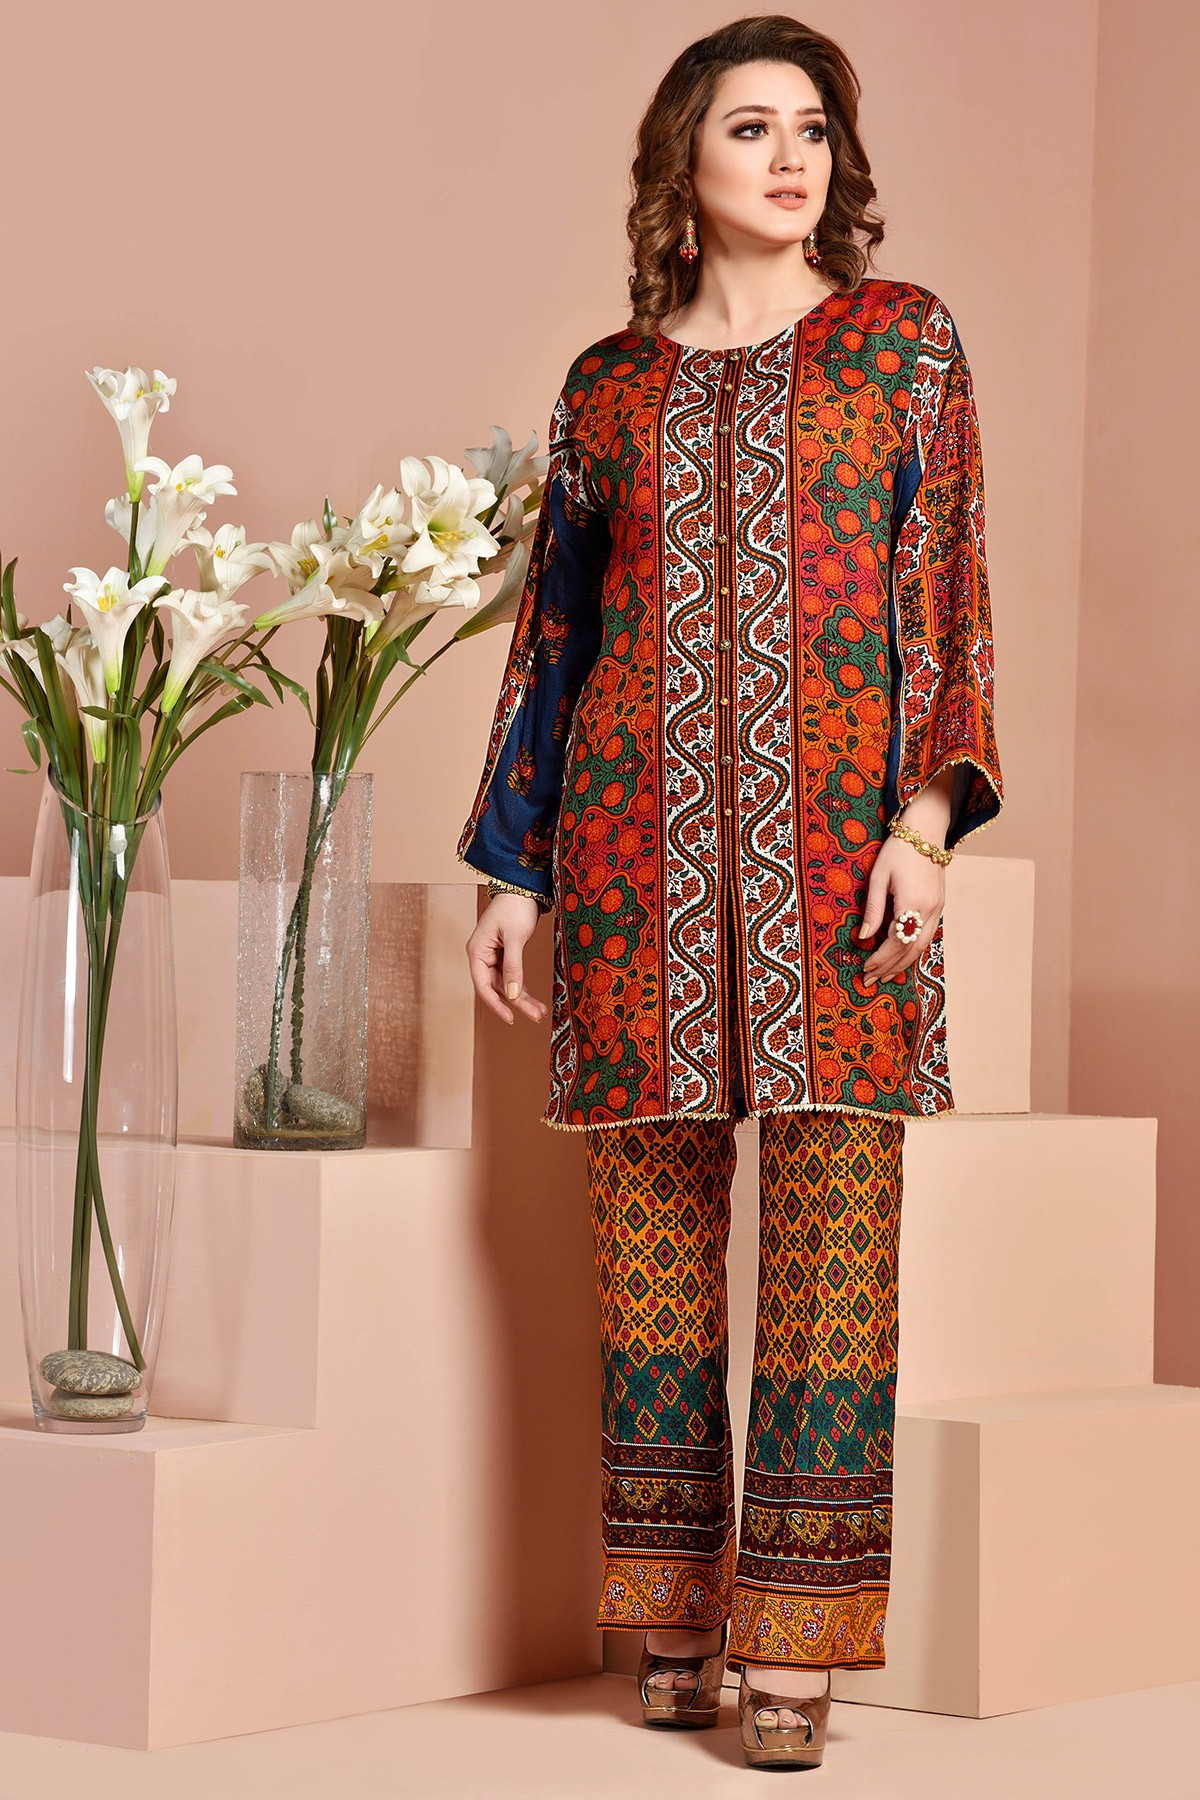 23773e4a2e The dresses are available as full three piece lawn, cotton, Silk suits  along with chiffon dupattas, some have embroidered sleeves and patches, ...